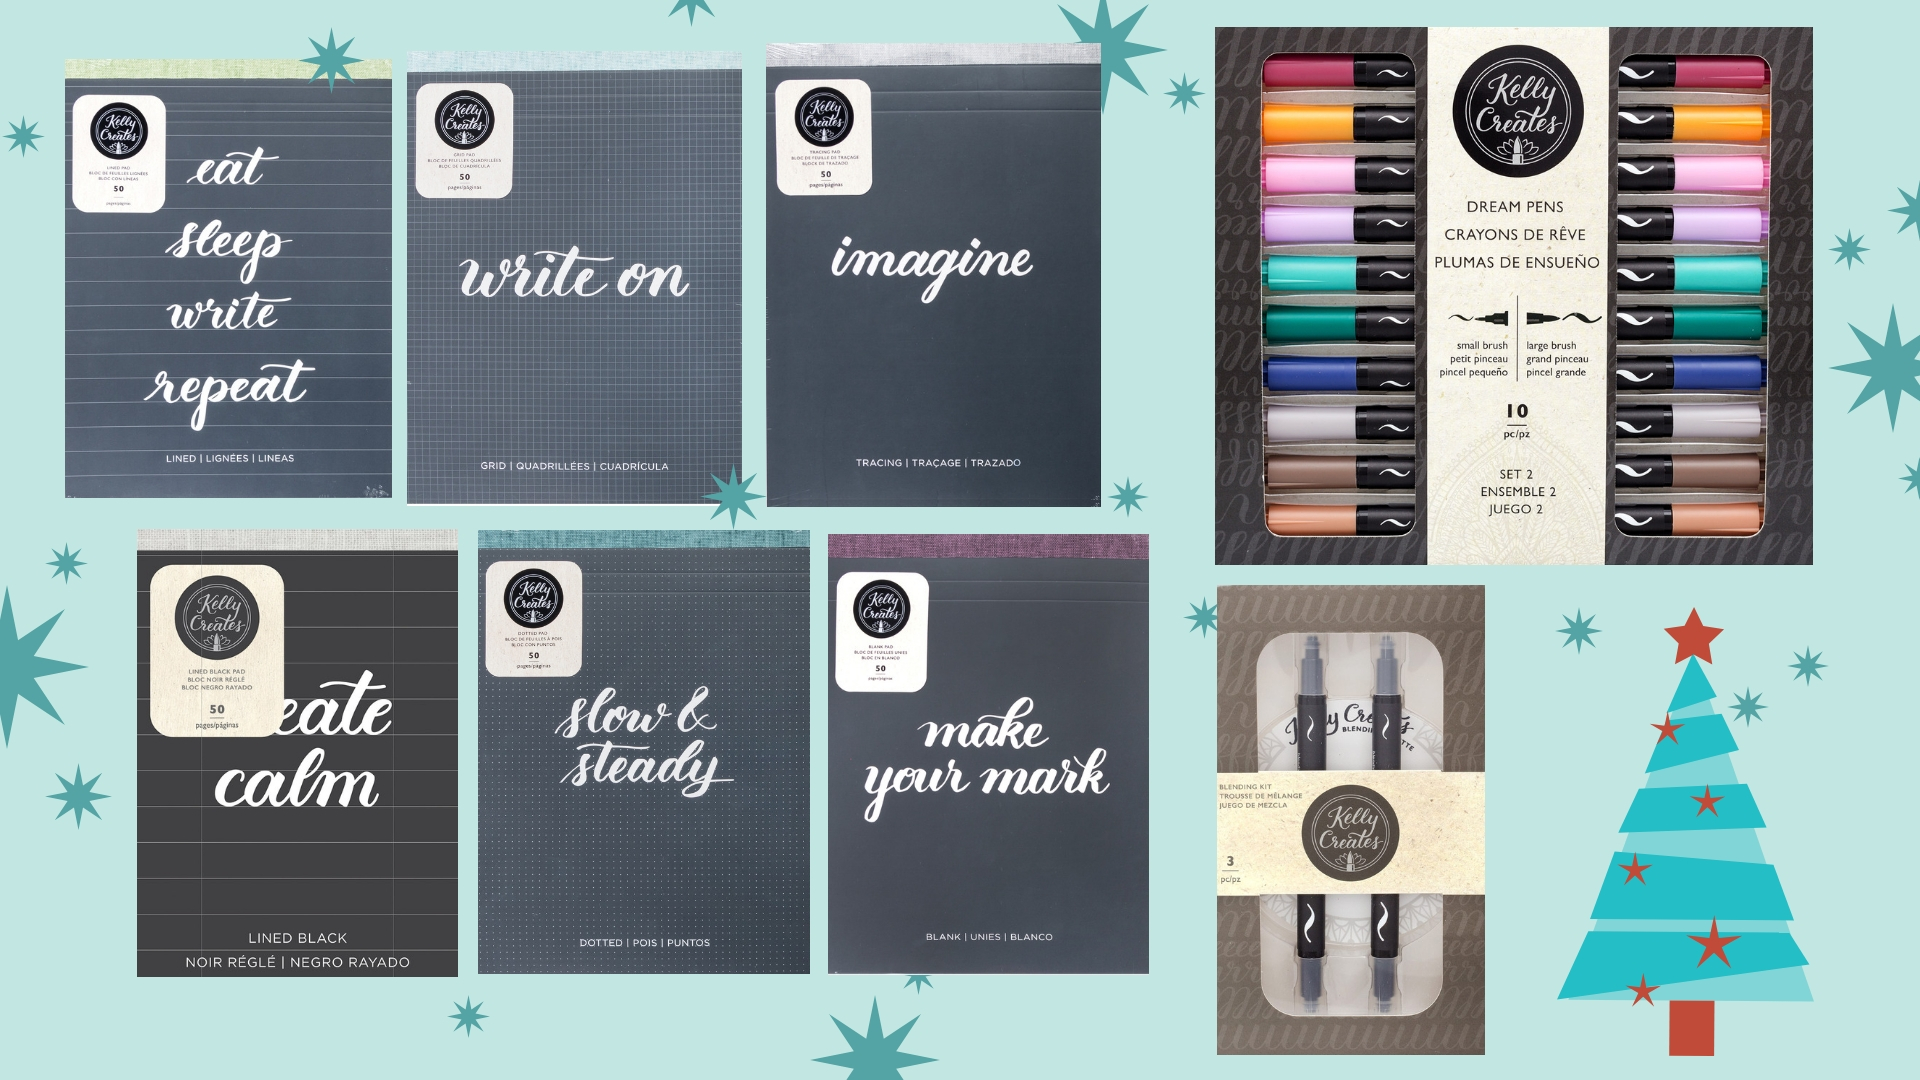 Kelly Creates 12 Days of Giving Prize Package | Creative Scrapbooker Magazine